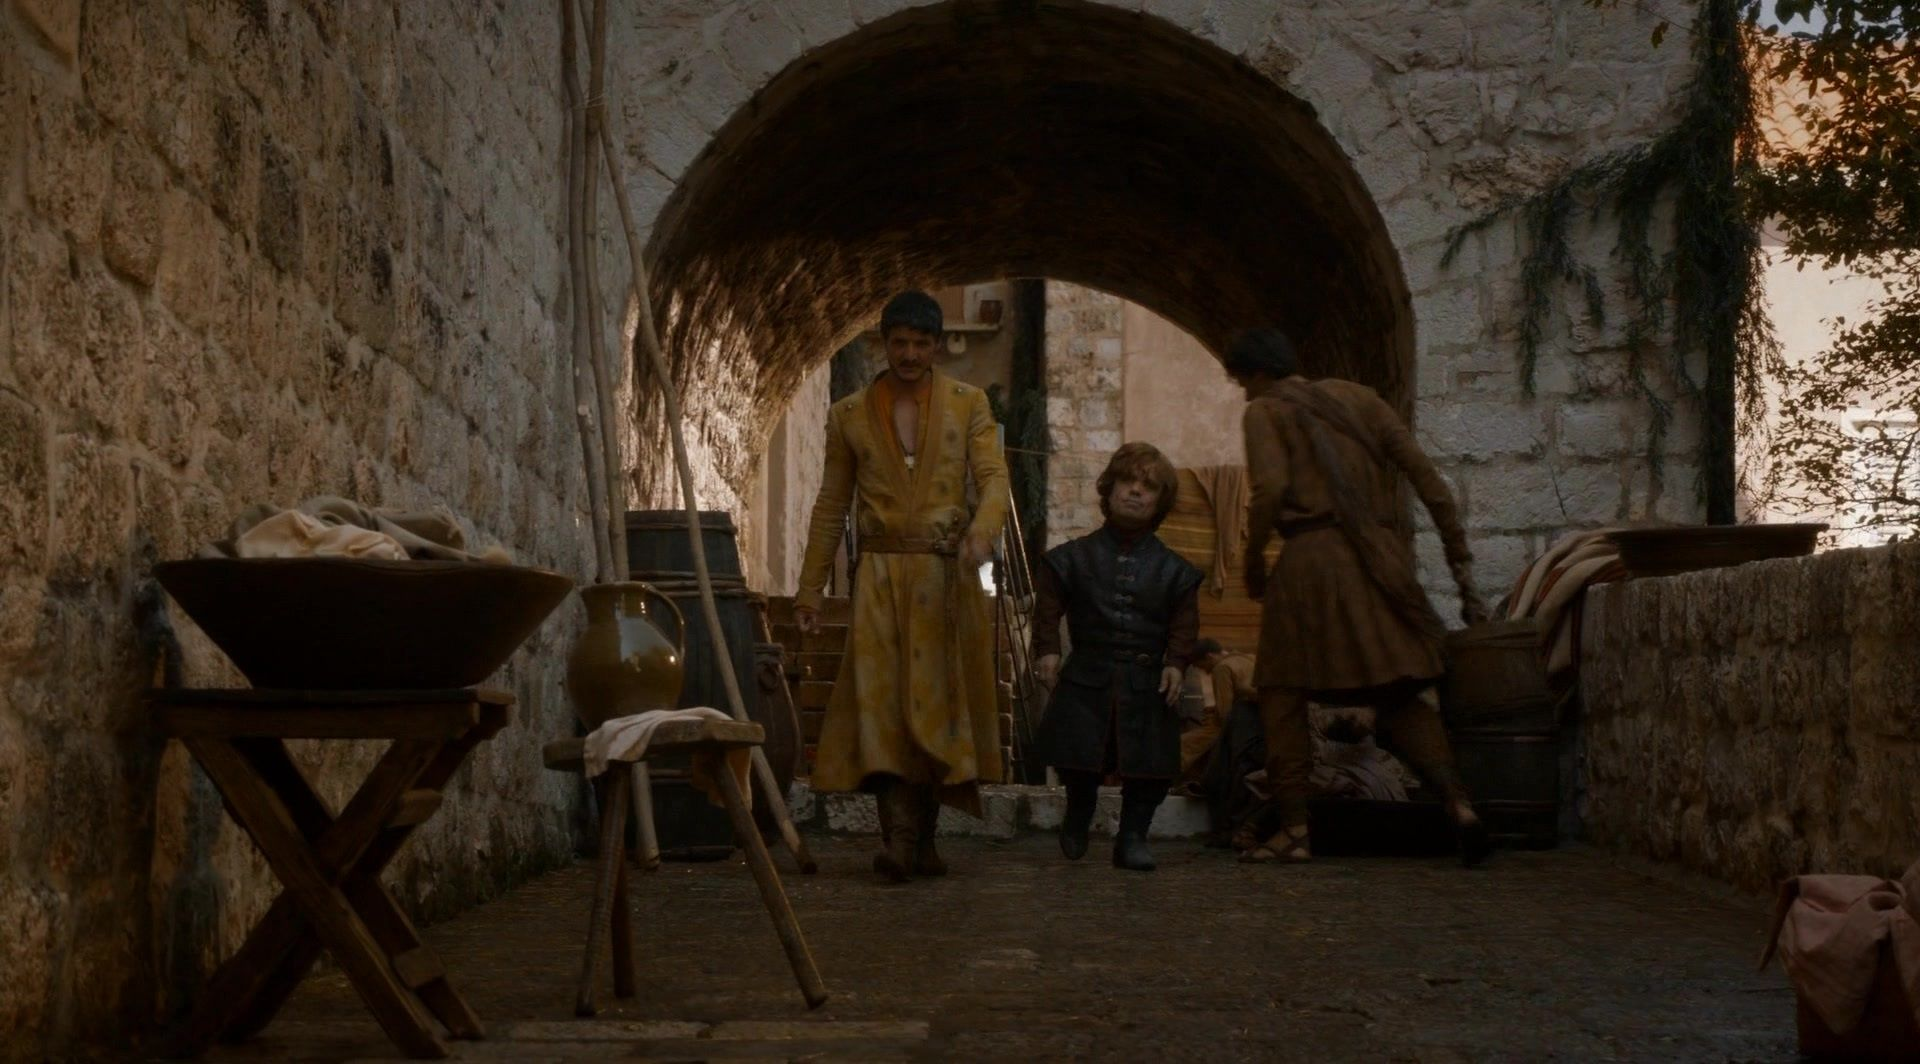 Game Of Thrones Croatia: Locations And Tours - S4 E1 Ethnographic Museum, Dubrovnik - Littlefinger's Brothel